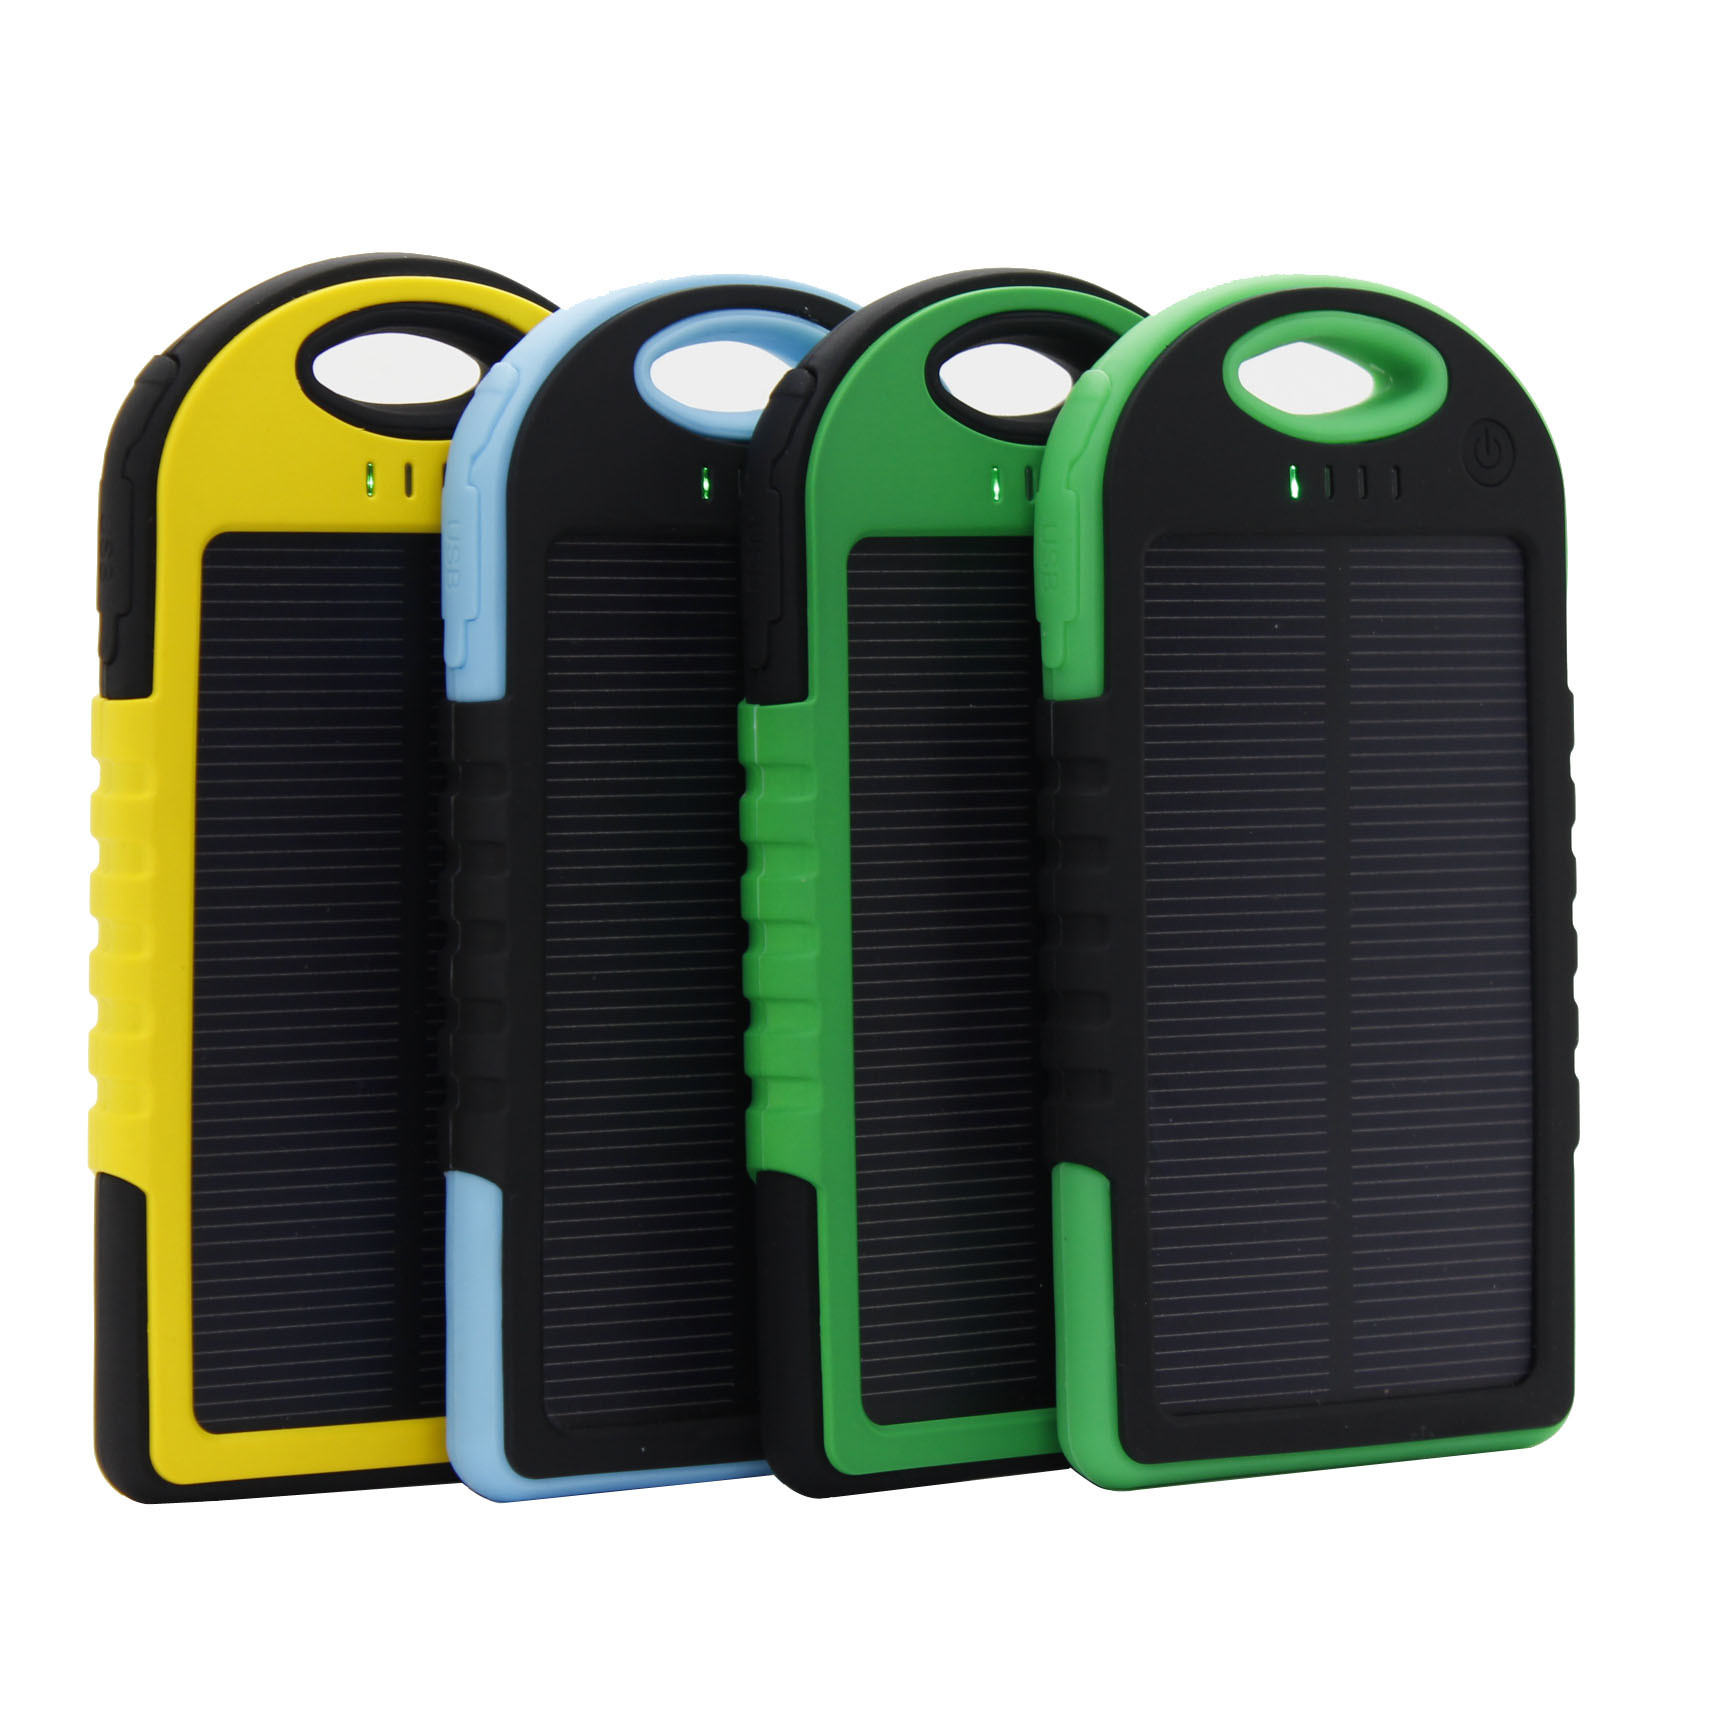 Portable Power Bank Solar Charger for iPhone 6